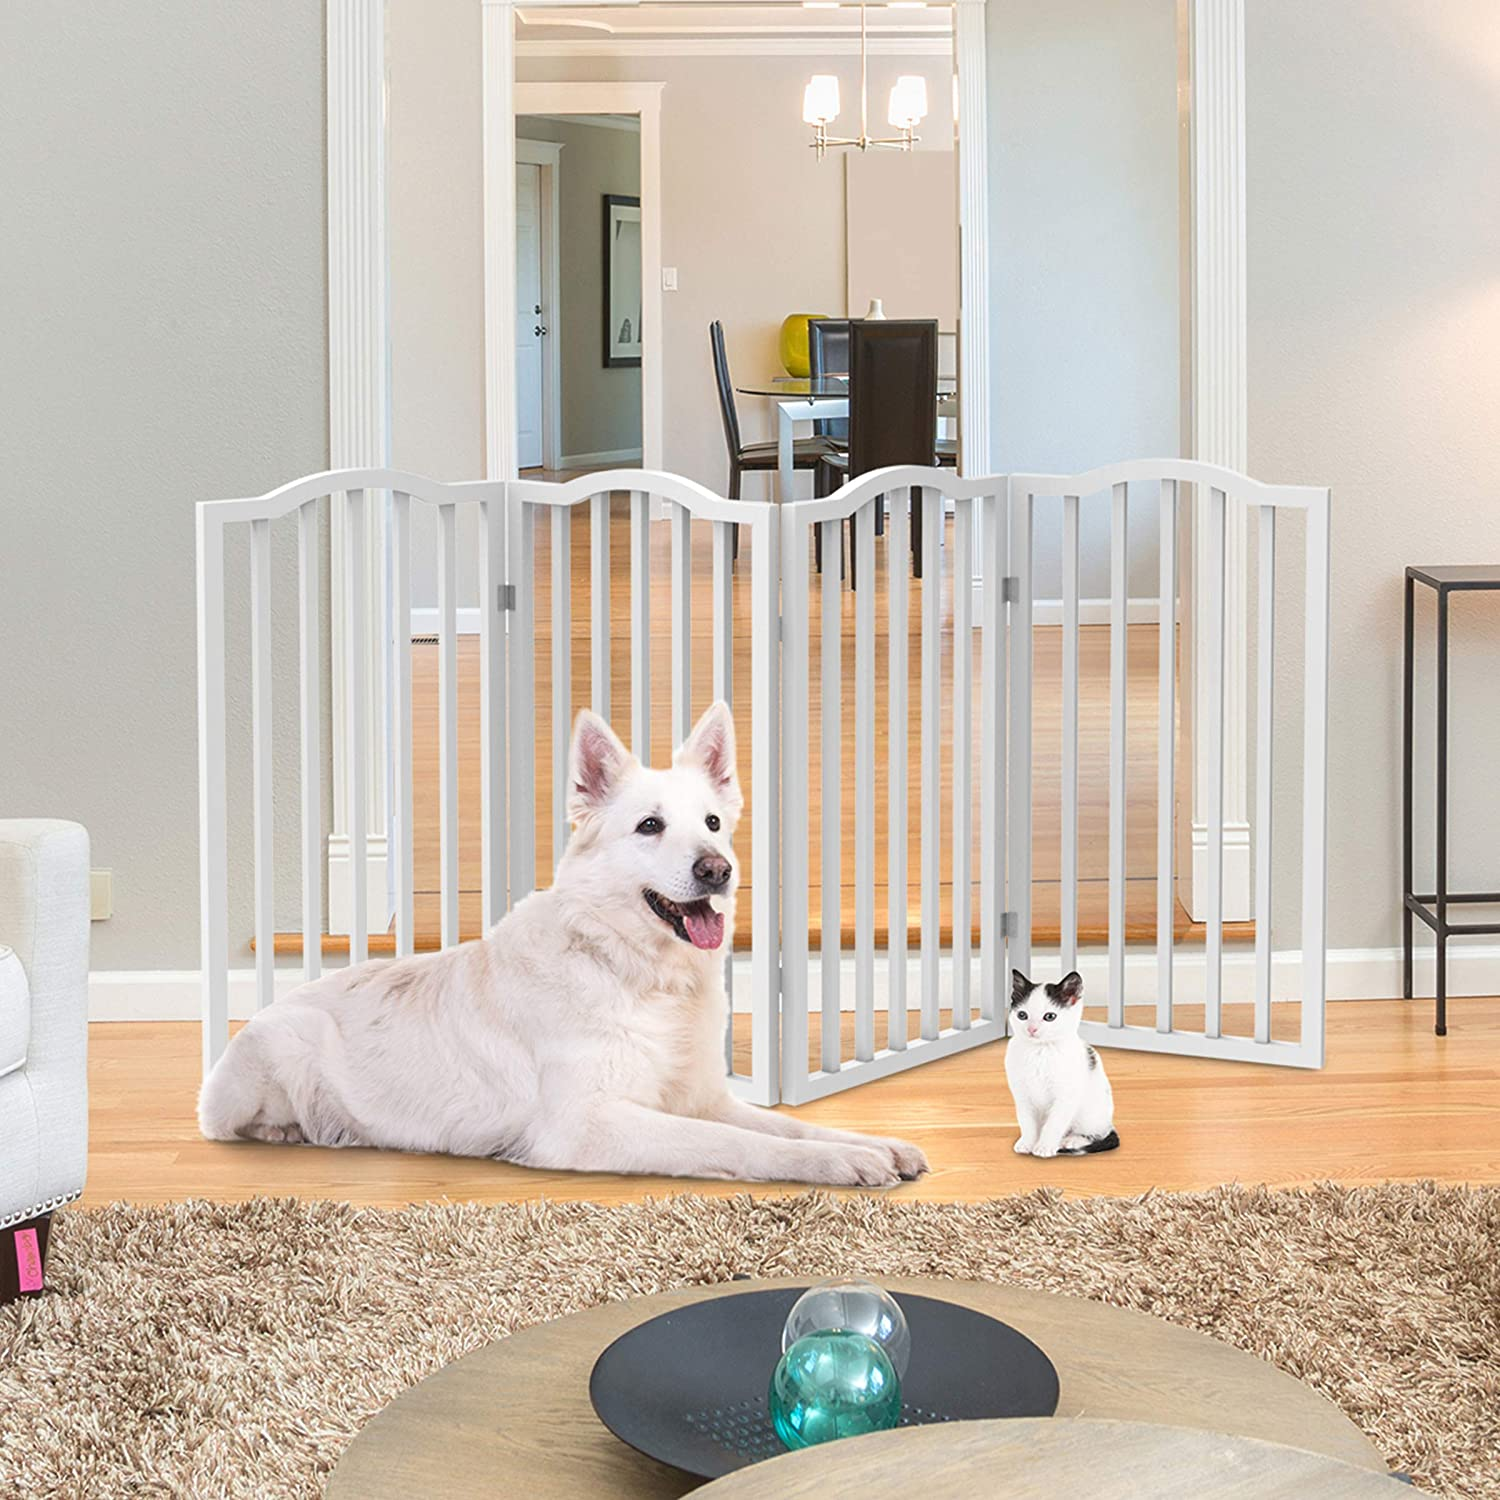 PETMAKER Wooden Pet Gate- Tall Freestanding 4-Panel Indoor Barrier Fence, Foldable with Decorative Arches for Dogs, Puppies, Pets- 72 X32 (White)